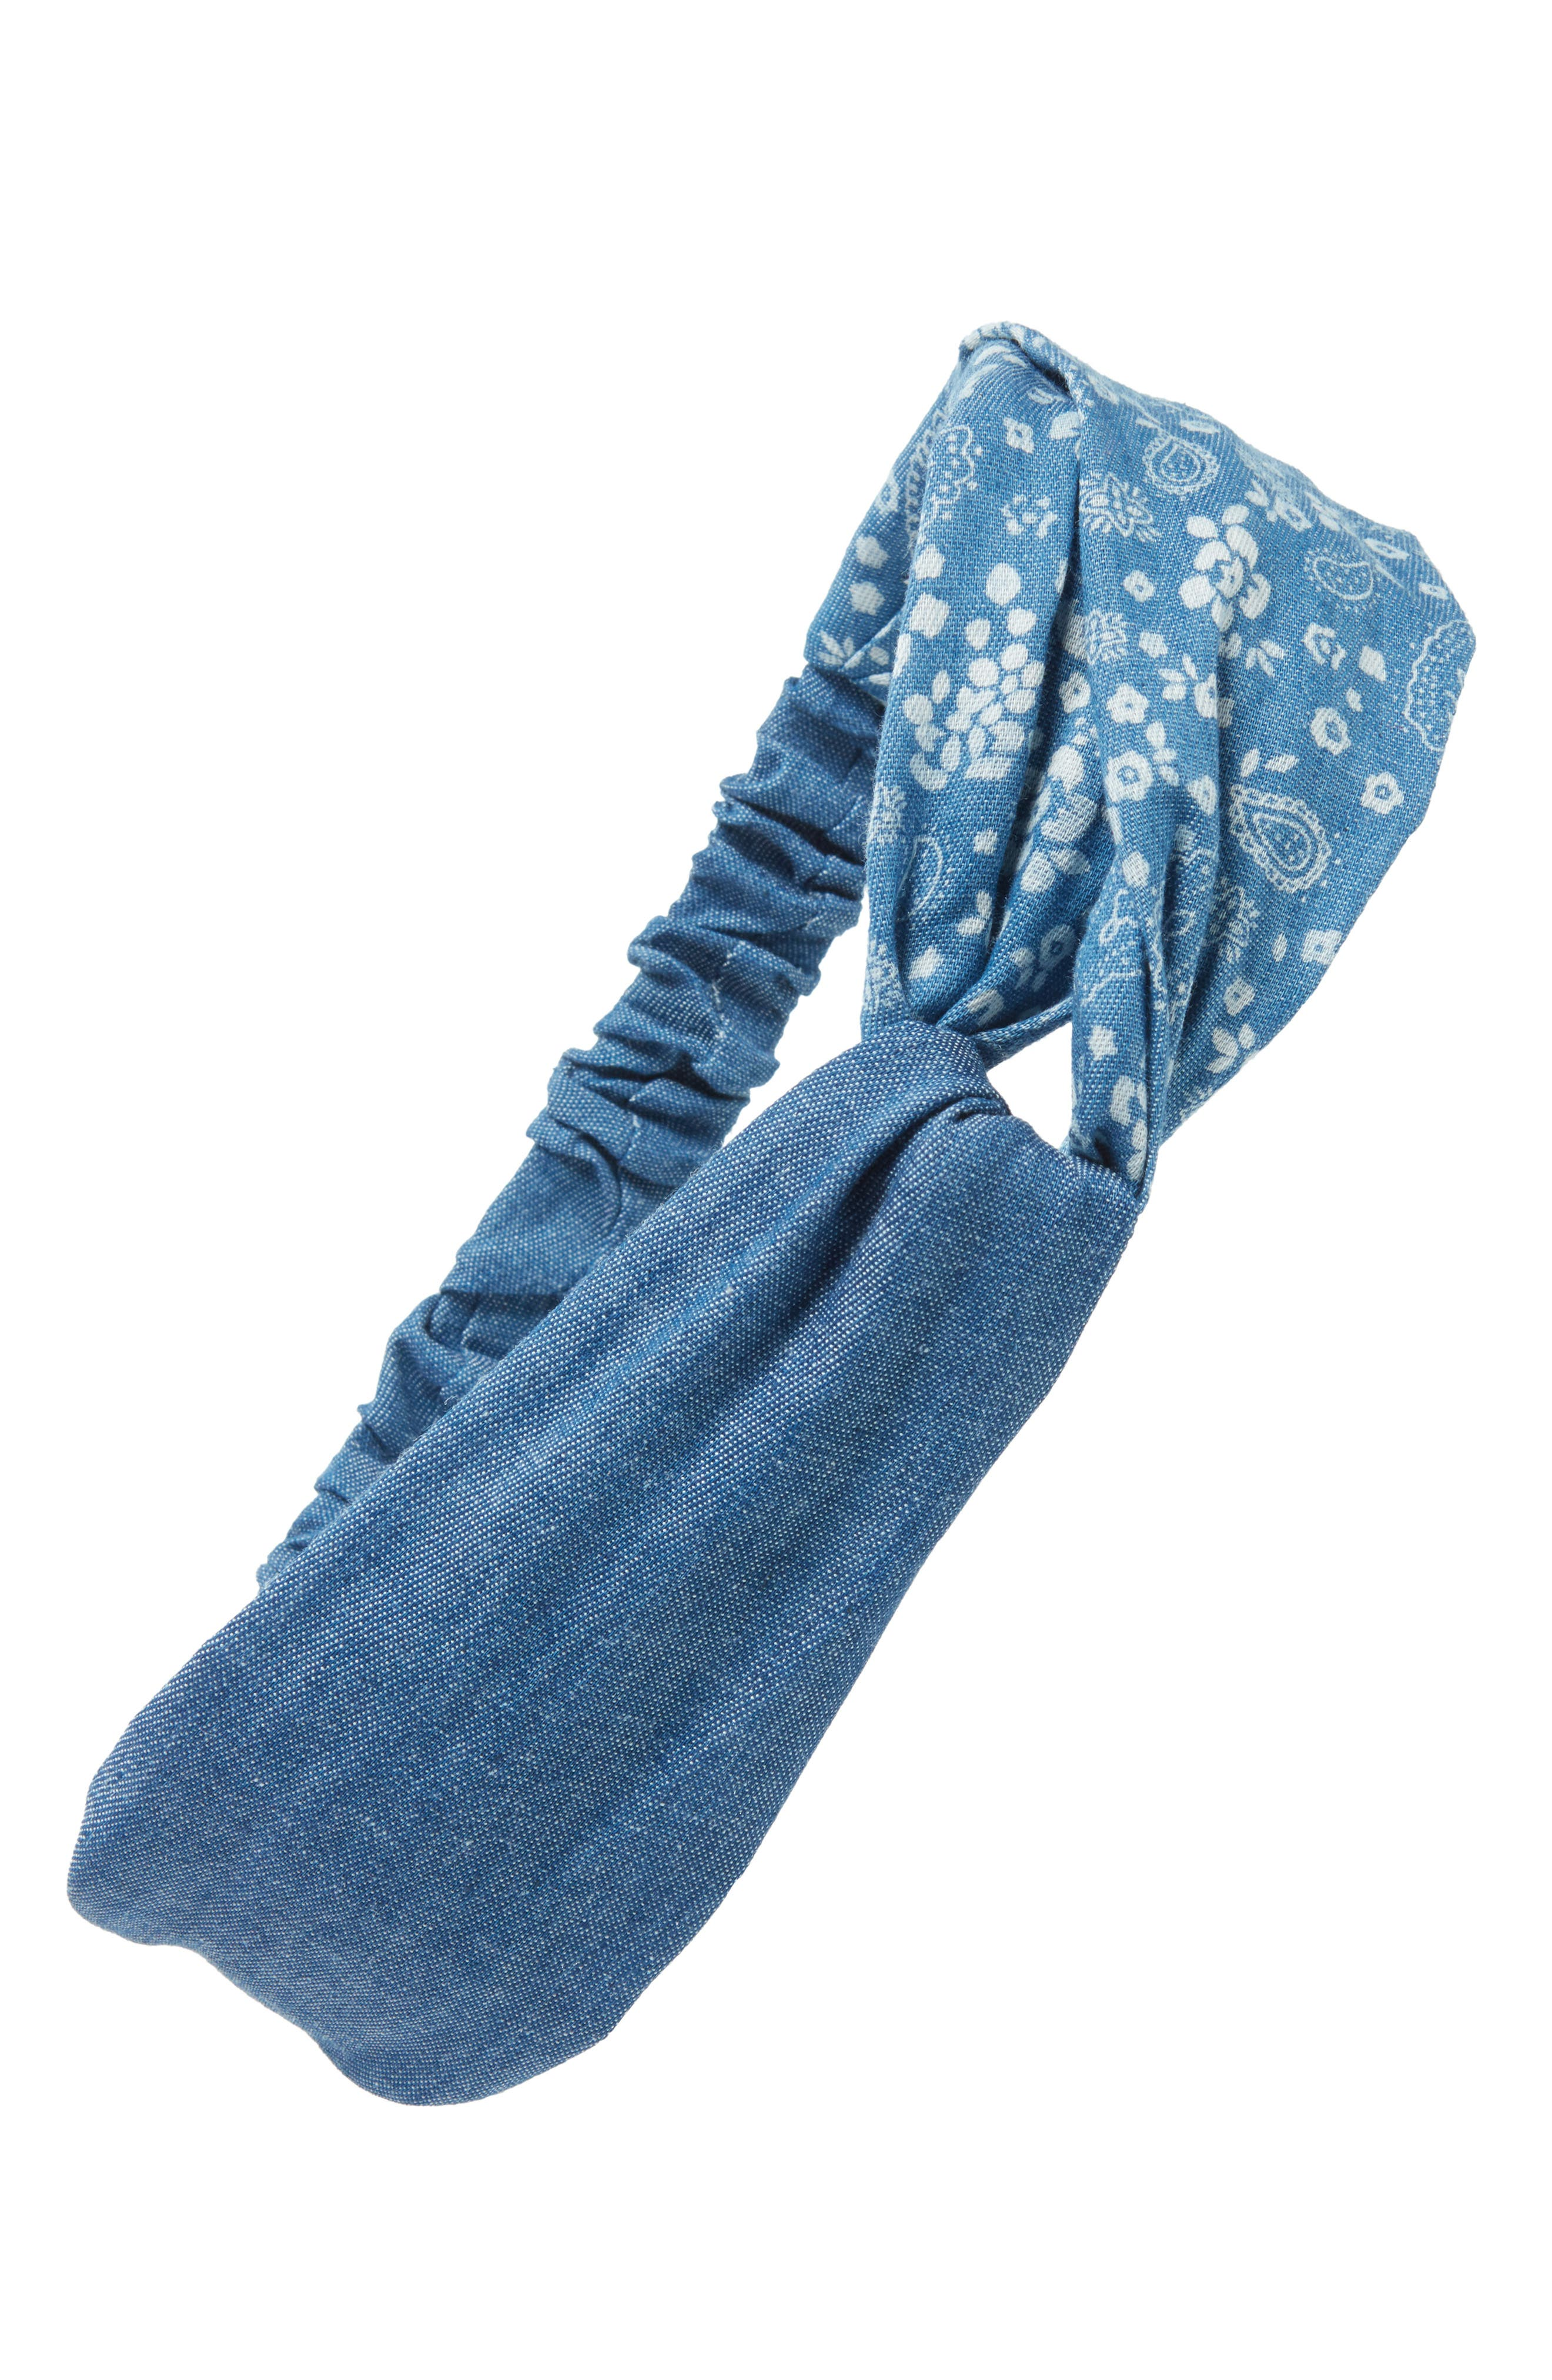 Paisley Denim Head Wrap,                             Main thumbnail 1, color,                             420